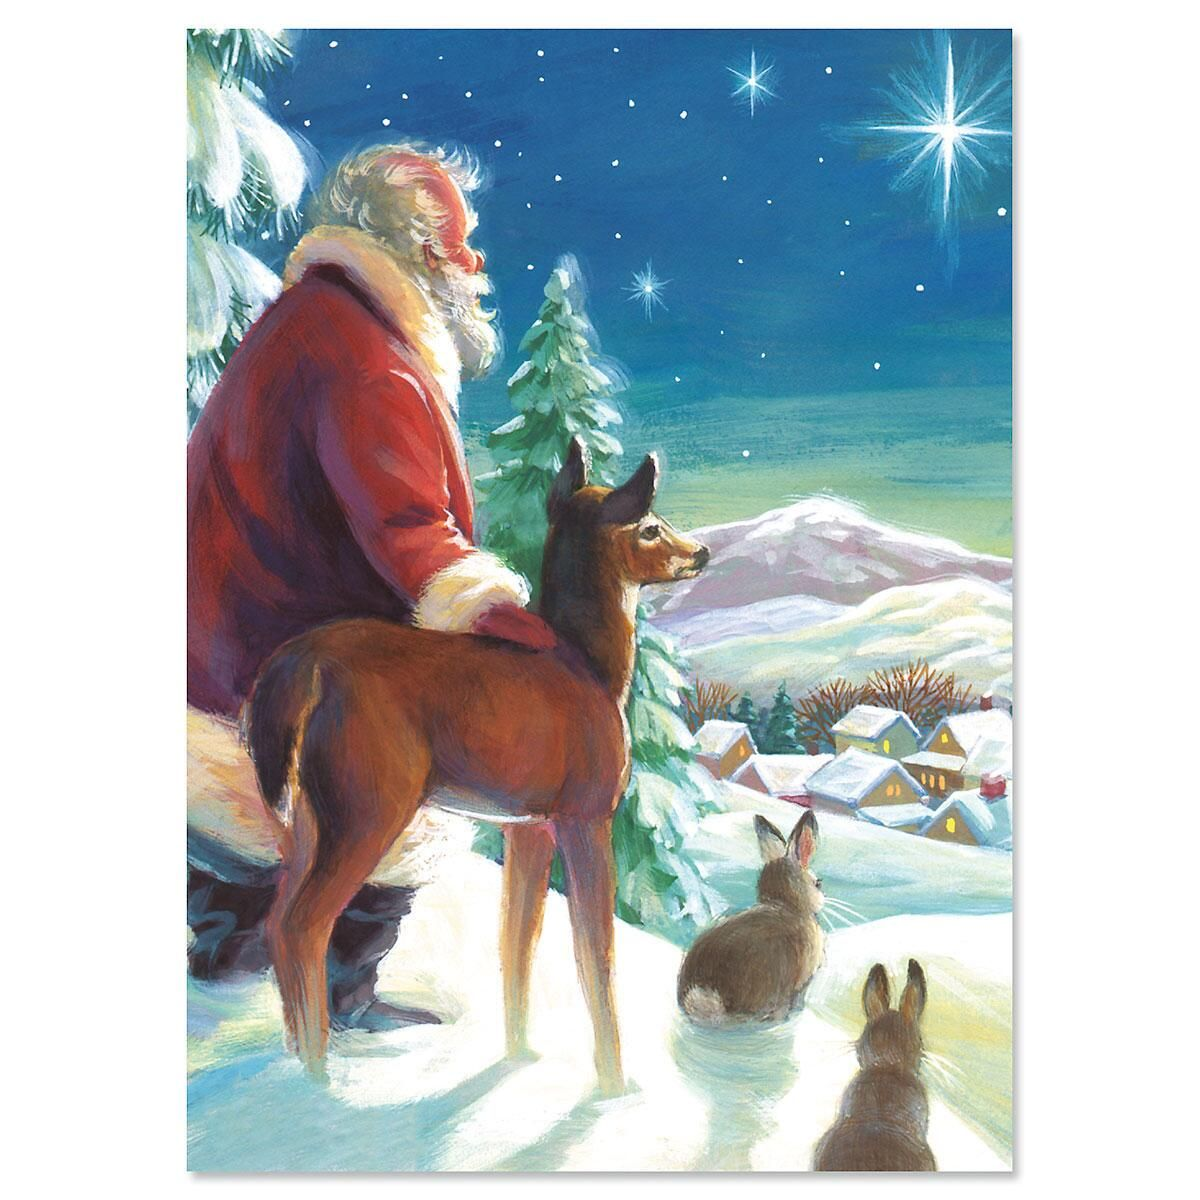 Santa and Star Nonpersonalized Christmas Cards - Set of 18